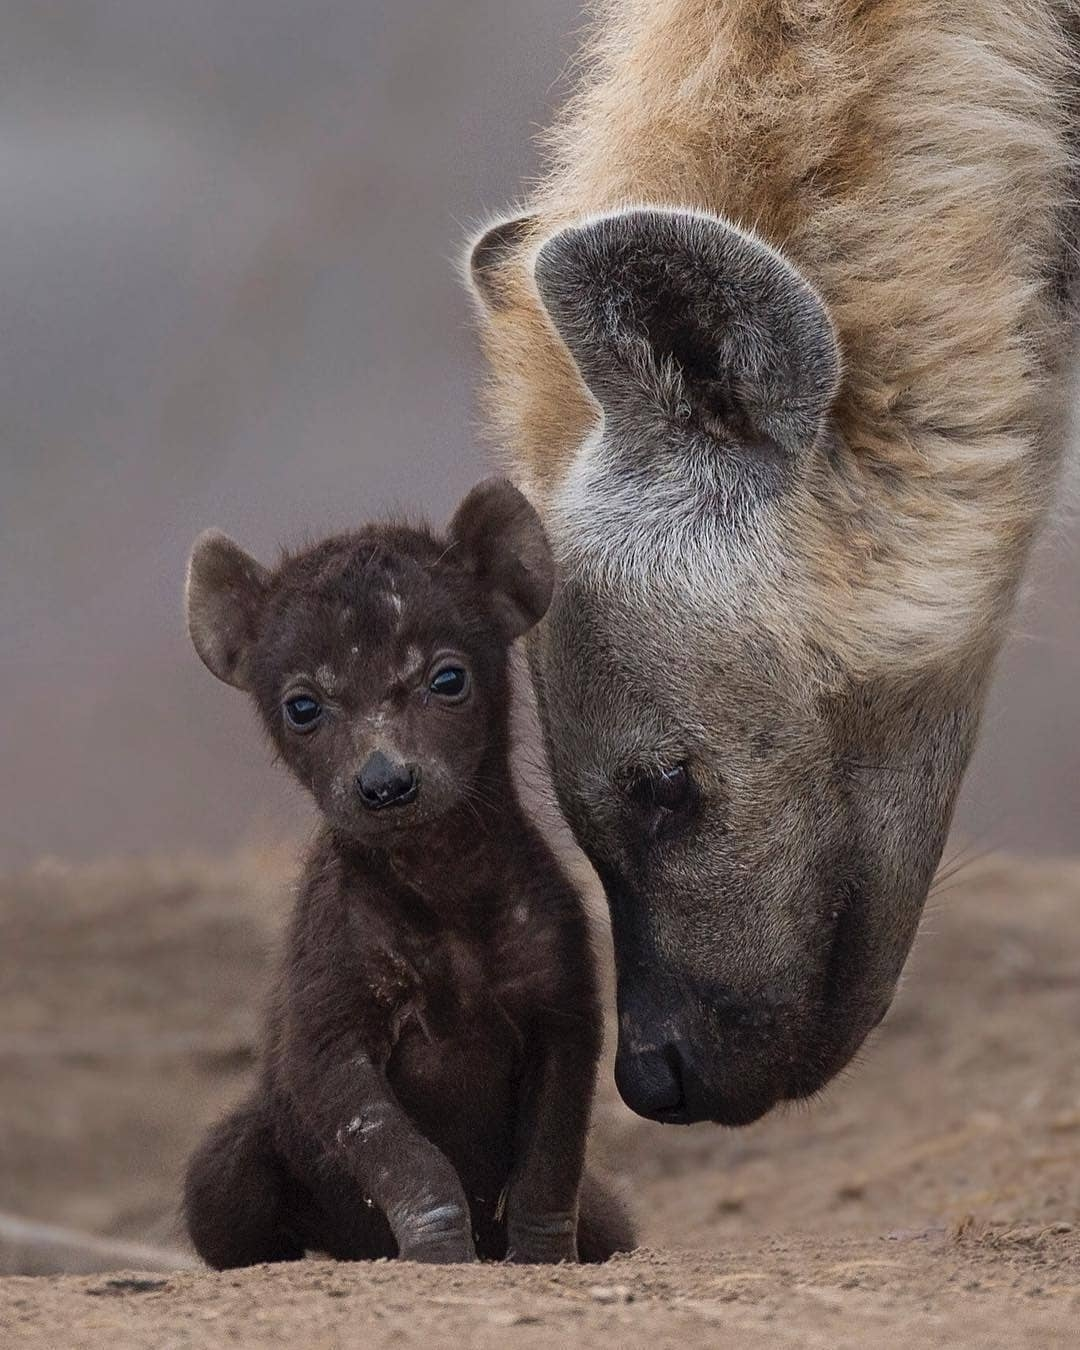 A special moment with one of Africa's most misunderstood animals! We especially love the negative space made in between the cub and hyena mother. Perfect!